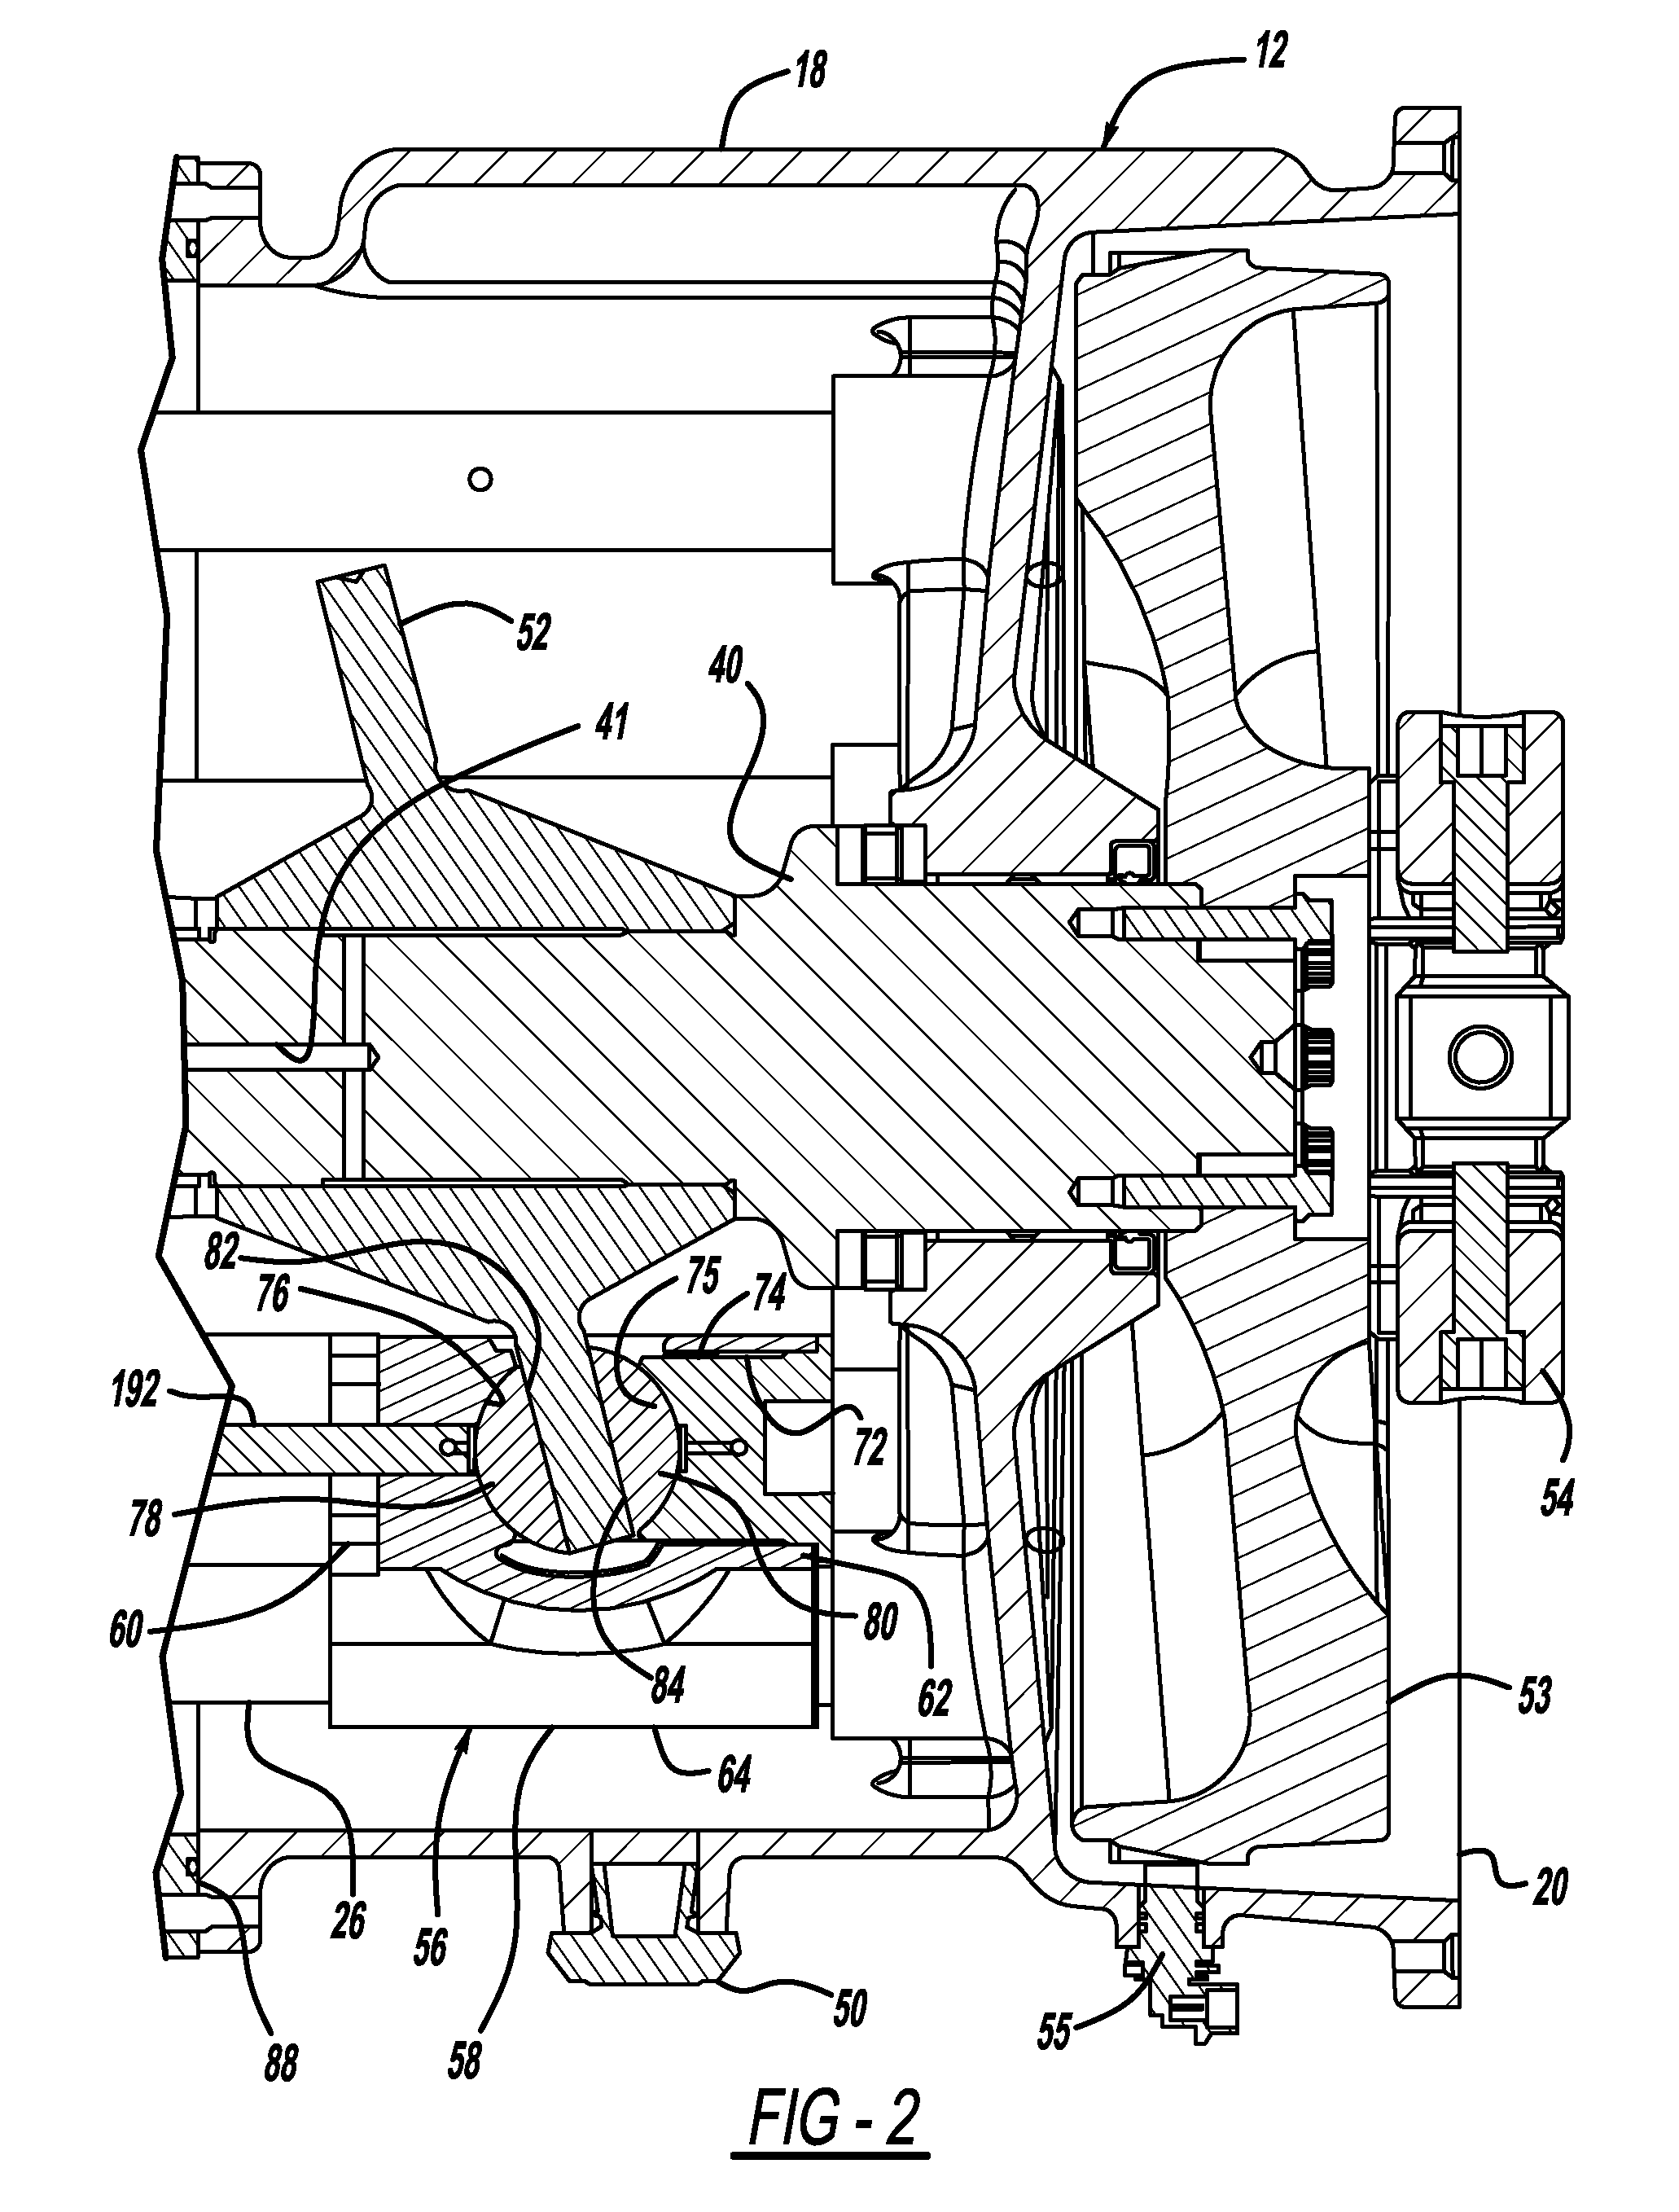 small resolution of pressure equalization system for a stirling engine us 8601809 b2 patent drawing